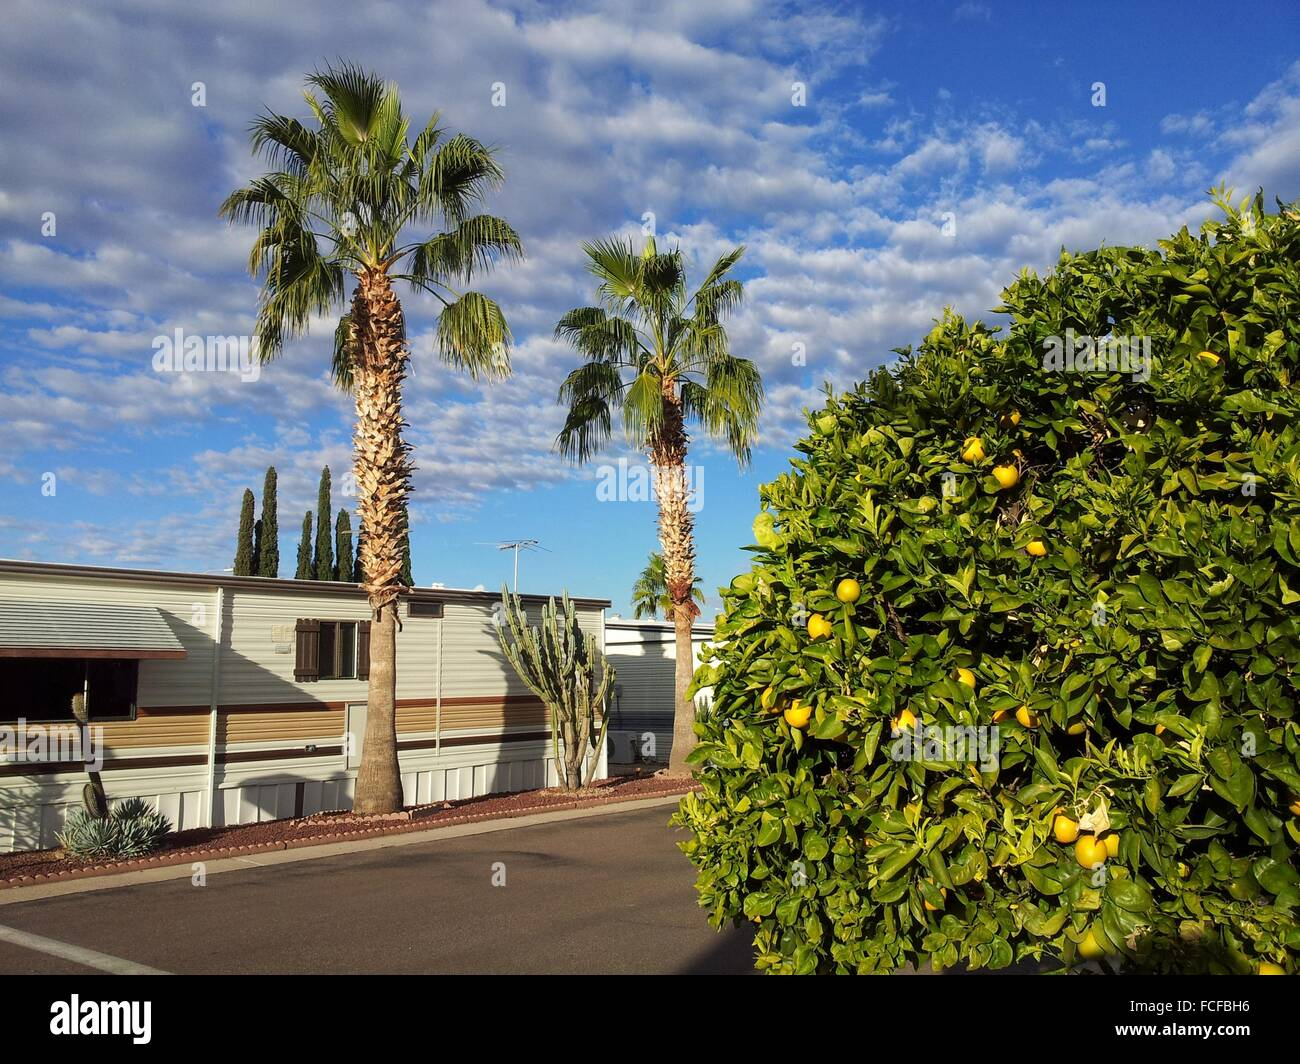 Orange And Plam Trees In An 55 Years Older Active Living Community Mesa Arizona United States Of America